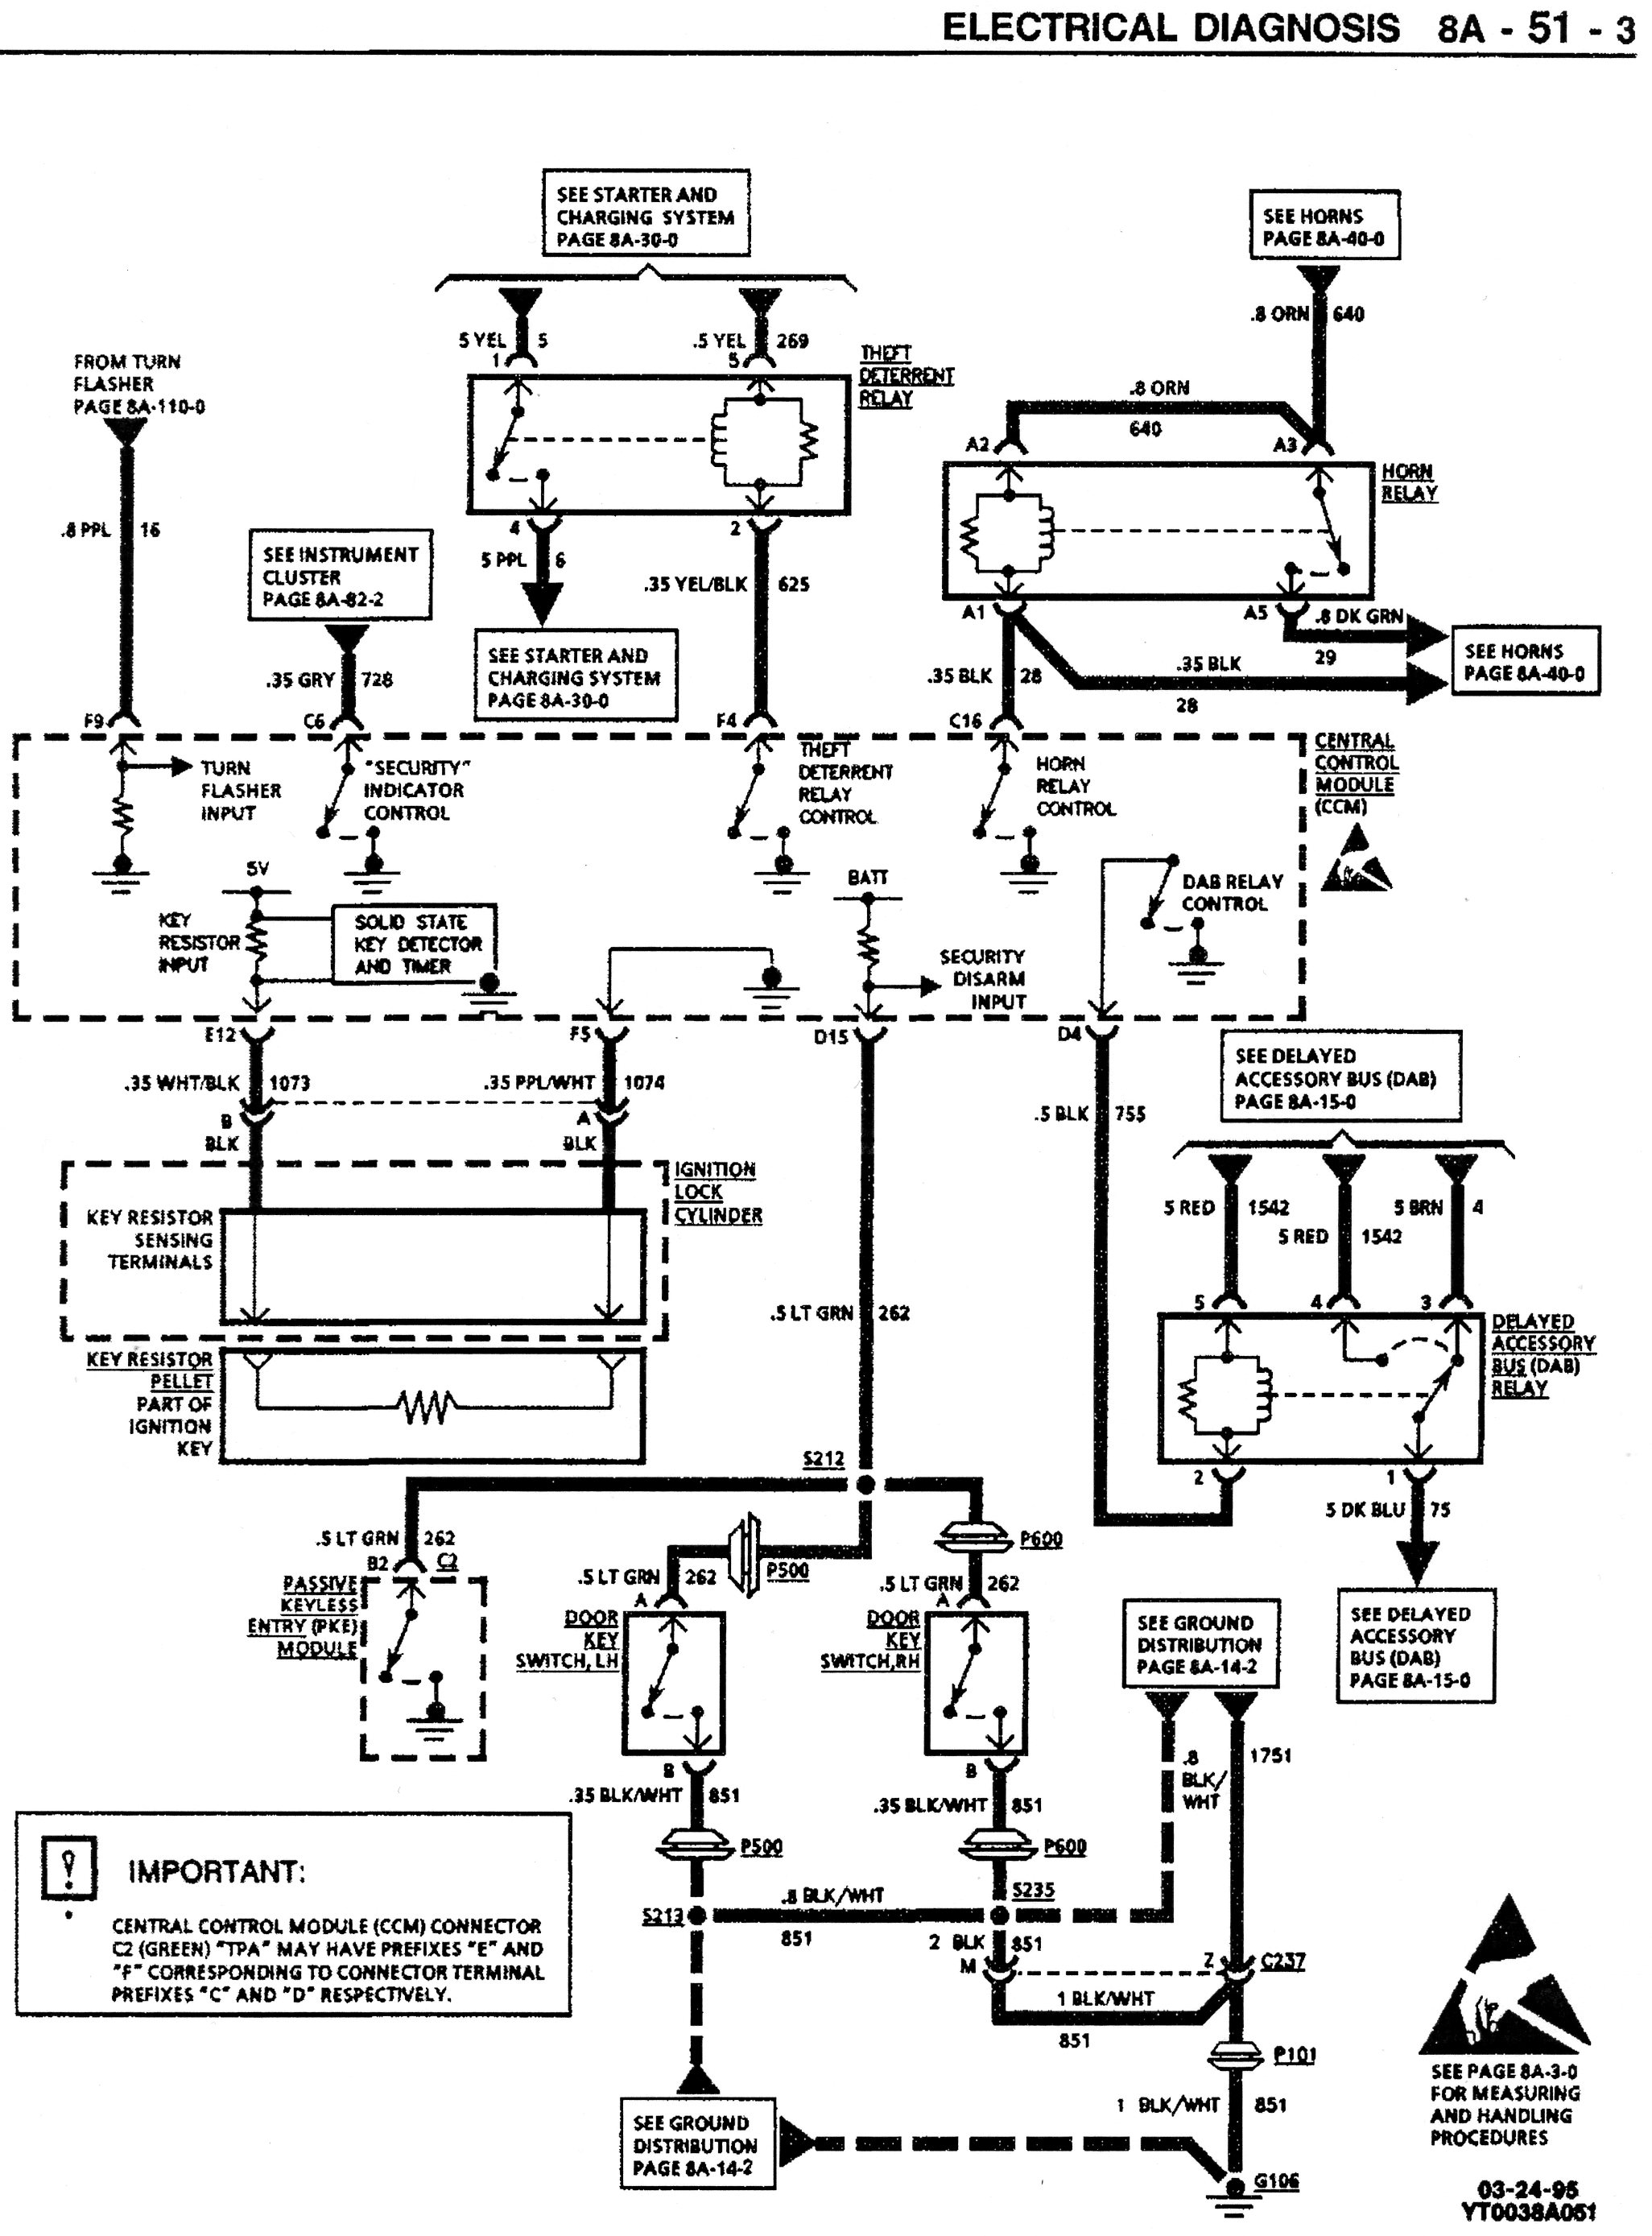 diagram] 1965 corvette instrument wiring diagram full version hd quality wiring  diagram - softdiagram.okayanimazione.it  diagram database